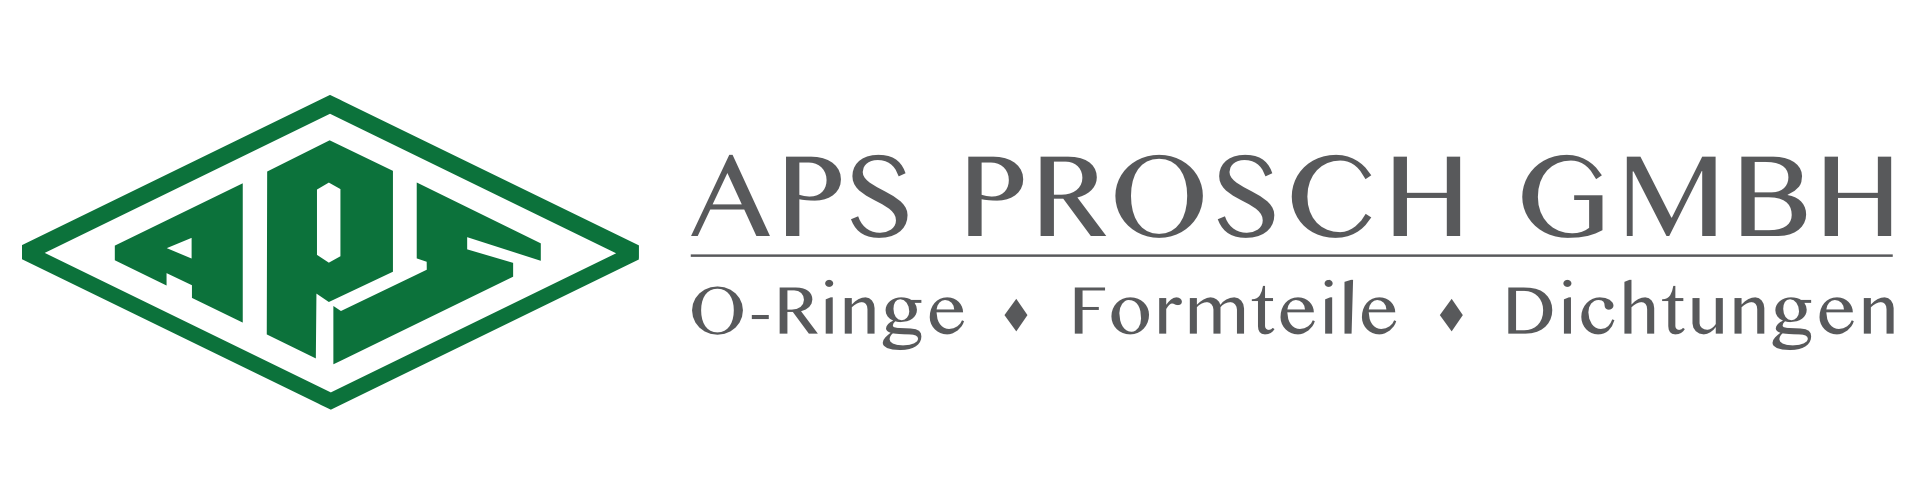 APS PROSCH Logo png